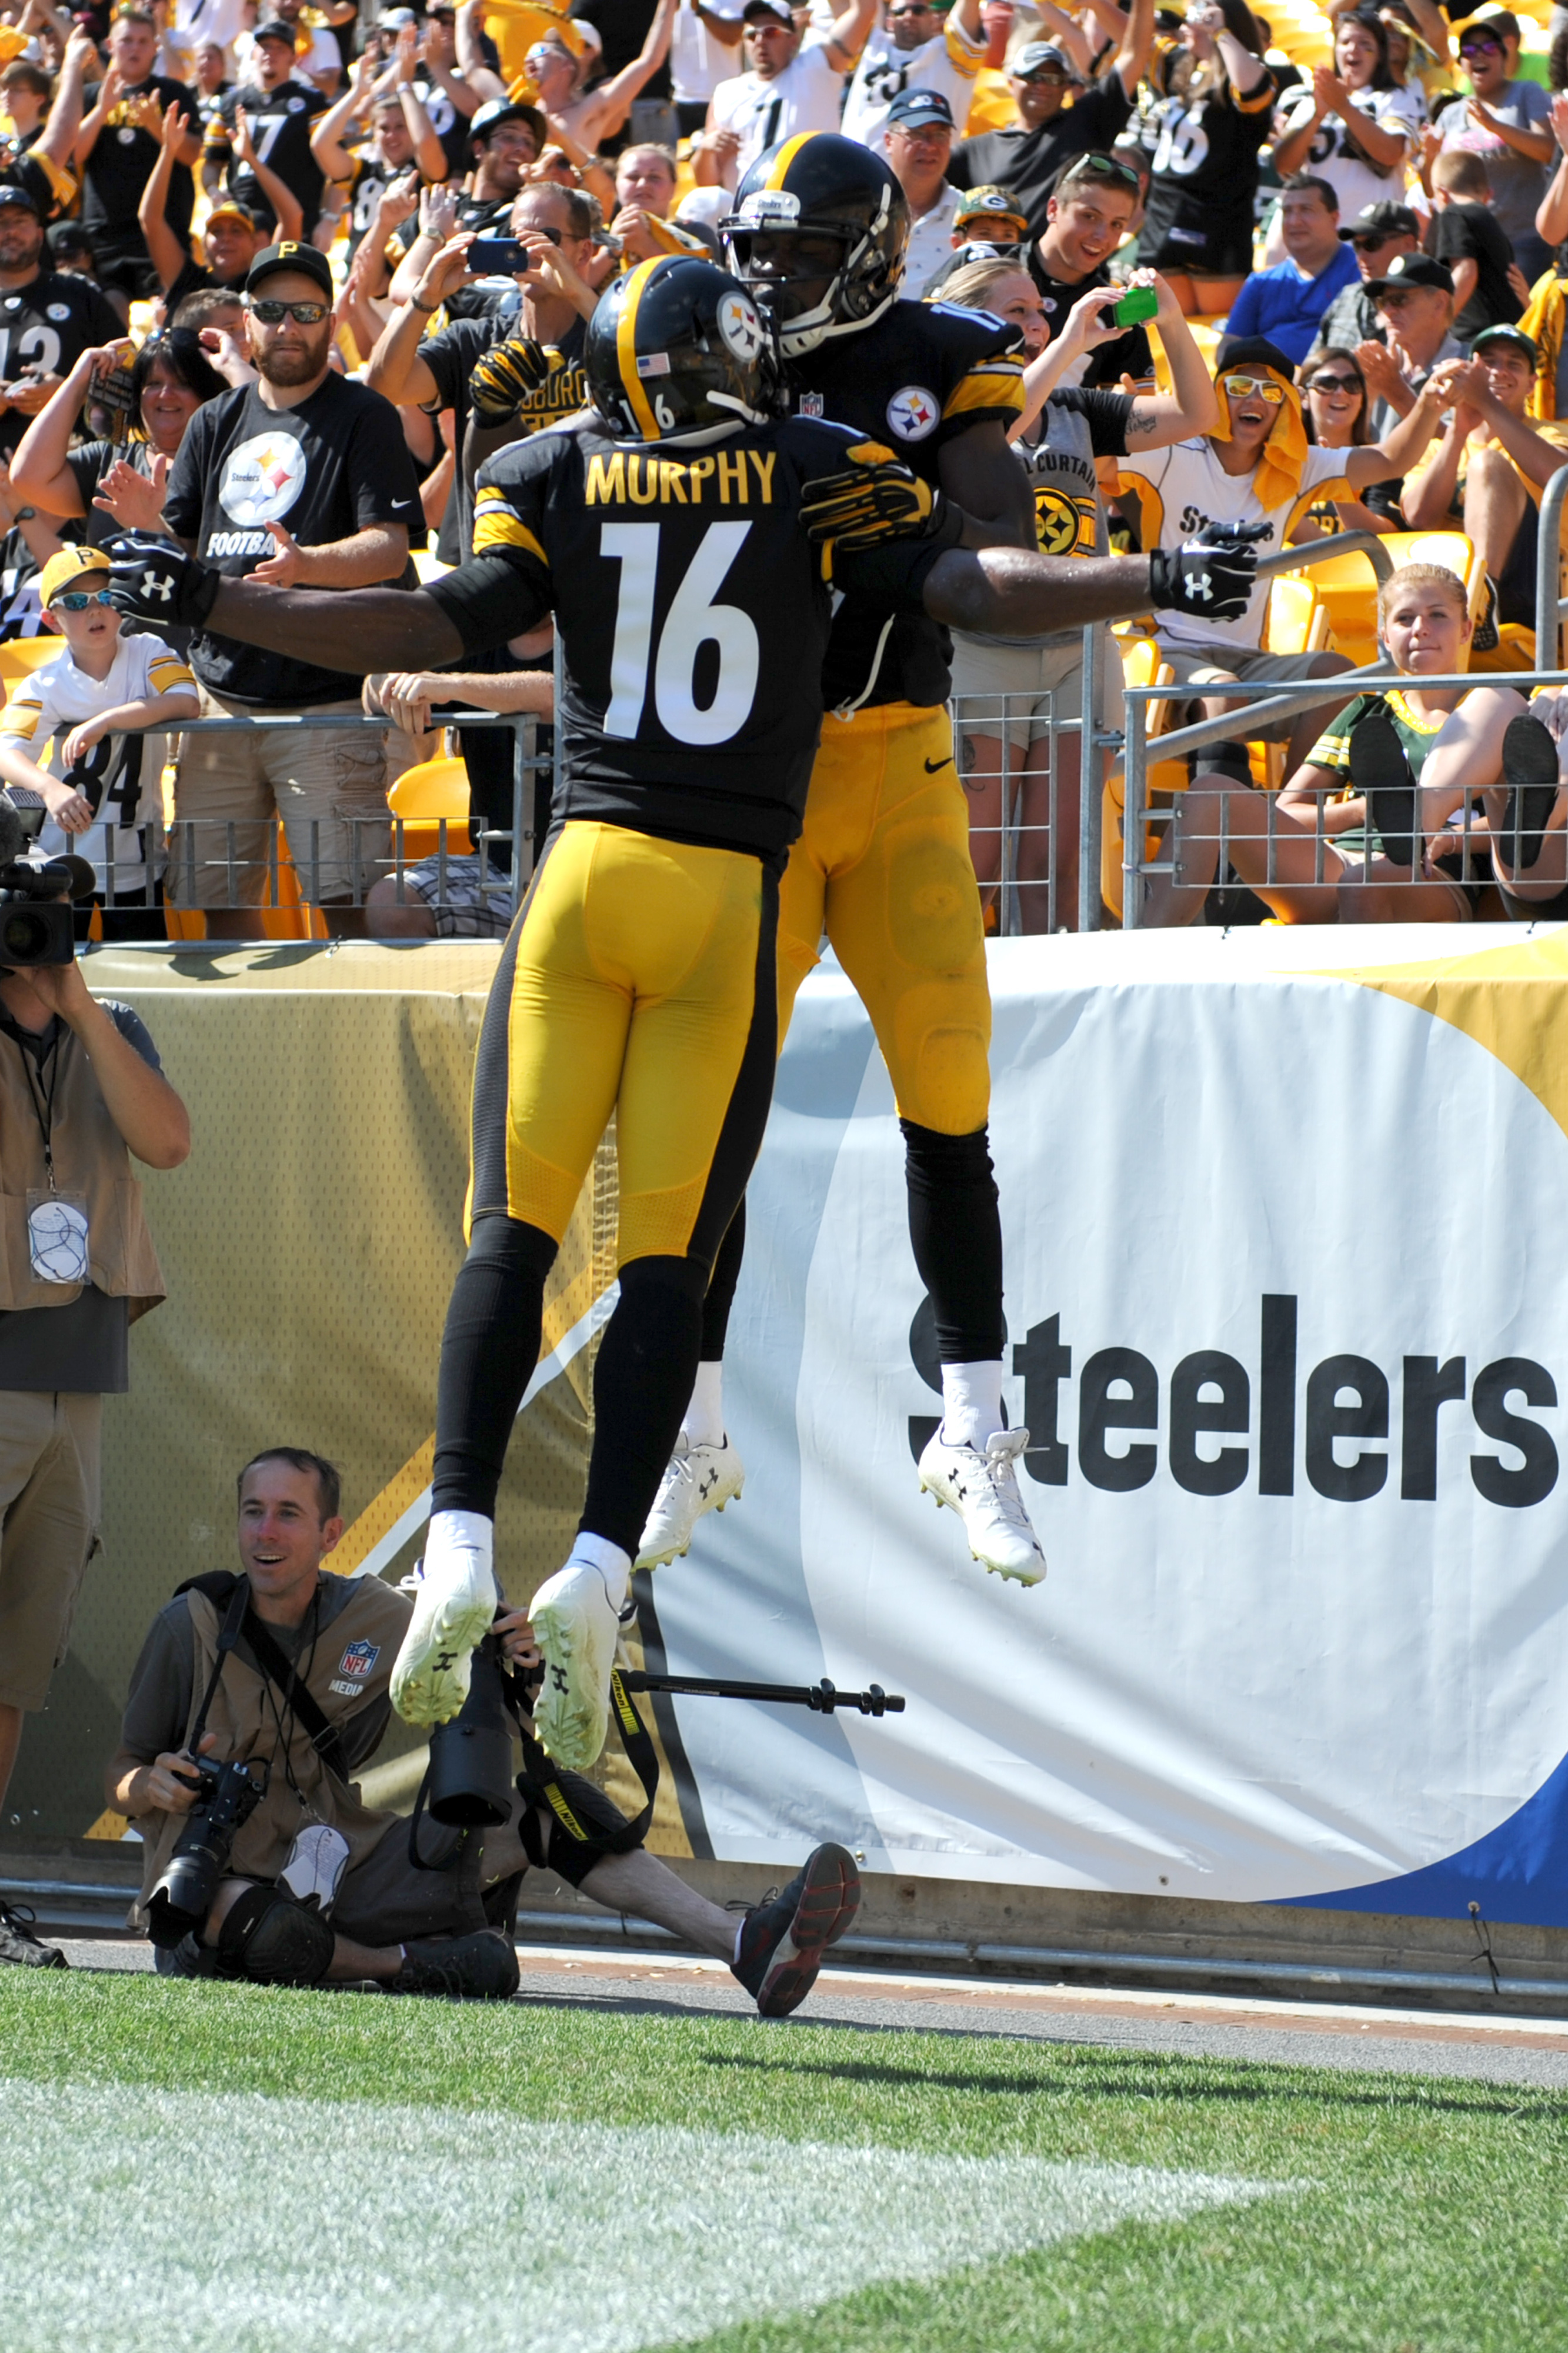 Pittsburgh Steelers wide receiver Shakim Phillips, rear, celebrates with Tyler Murphy after making a touchdown catch during the fourth quarter of the NFL preseason football game against the Green Bay Packers, Sunday, Aug. 23, 2015, in Pittsburgh. (AP Phot